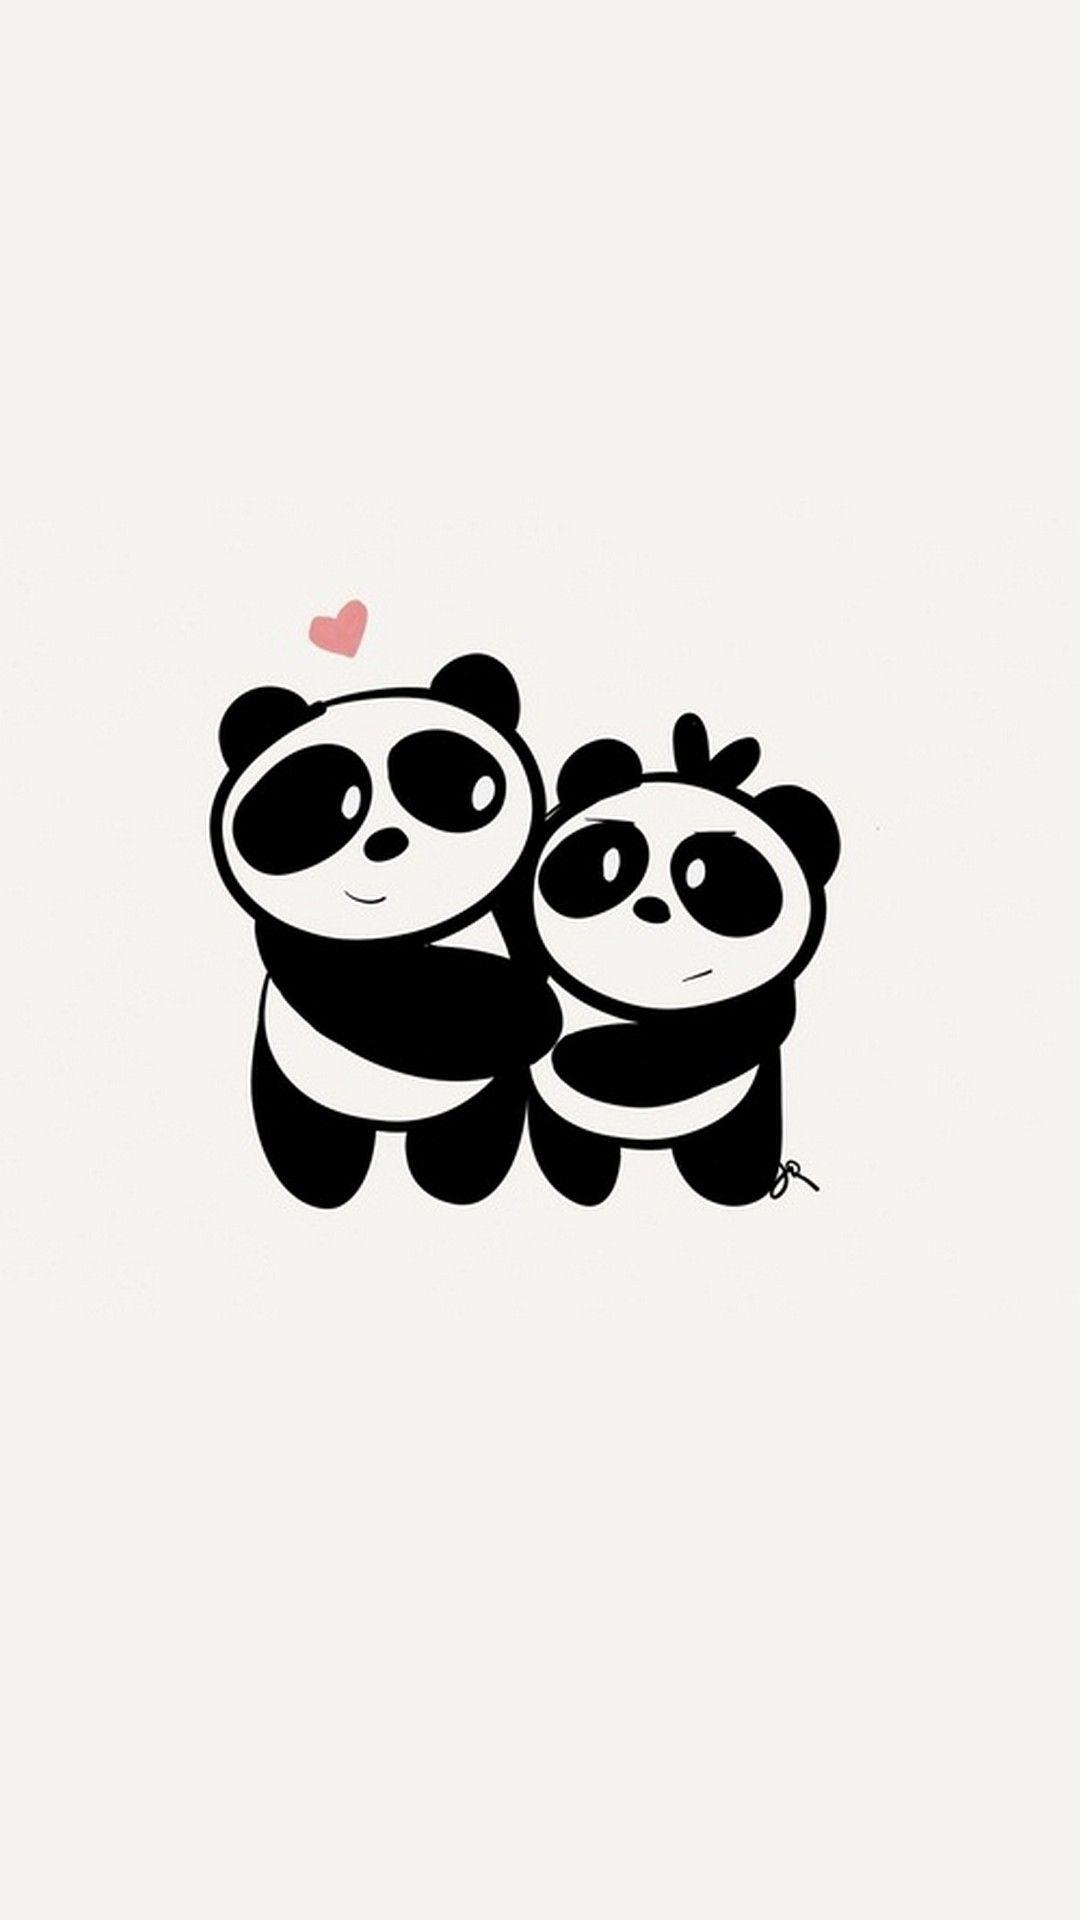 Panda Couple Wallpapers - Wallpaper Cave